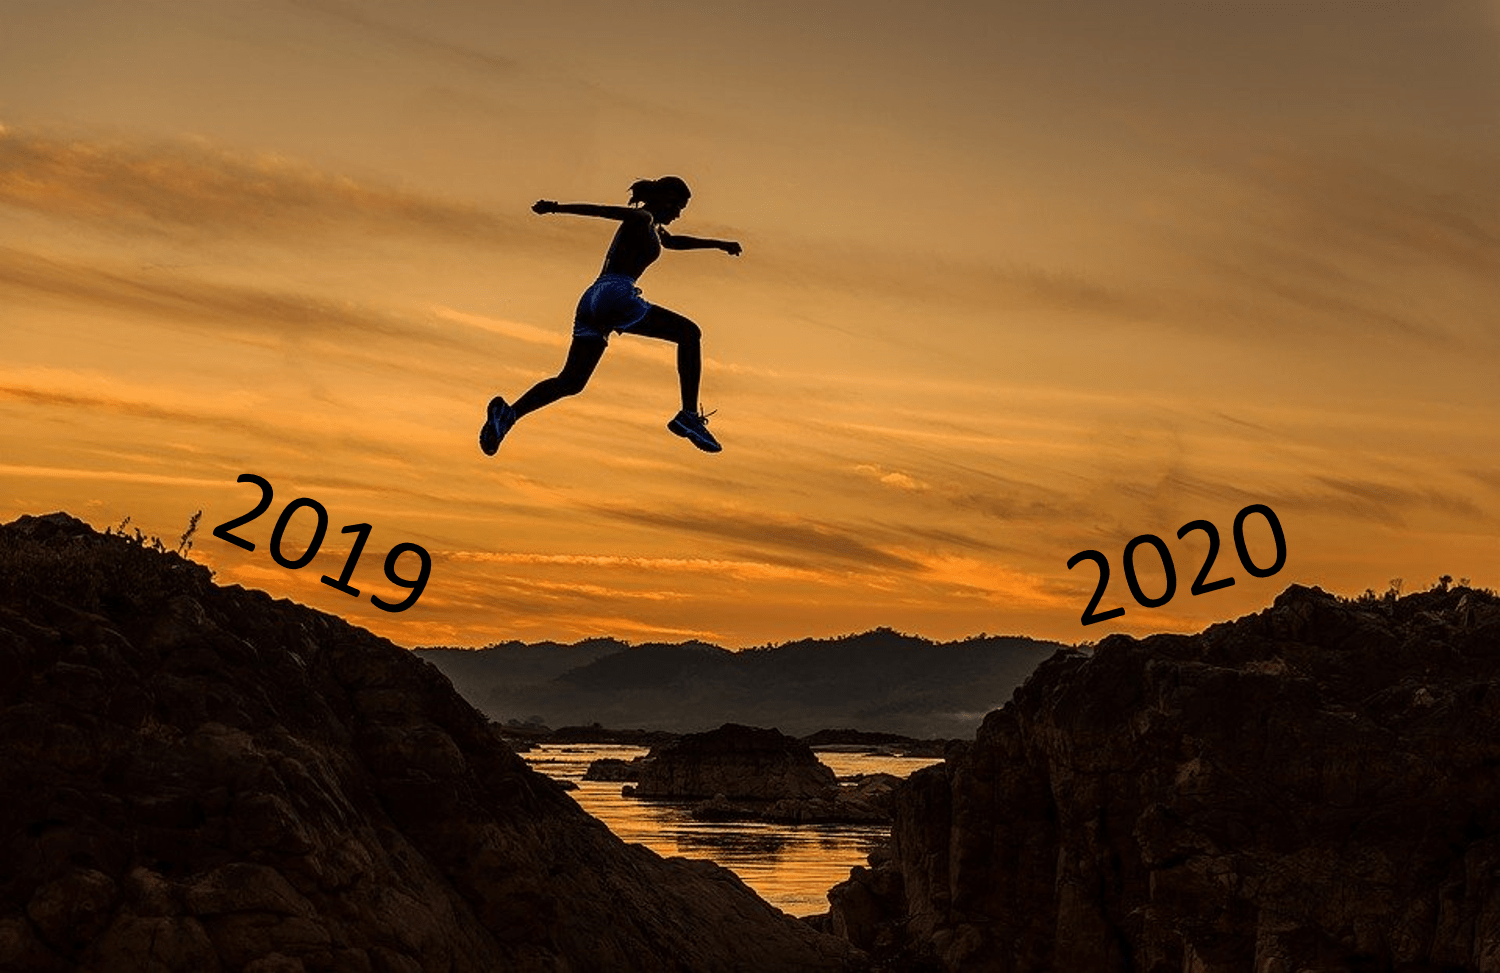 a woman leaps from one hill (labelled 2019) to another (labelled 2020)